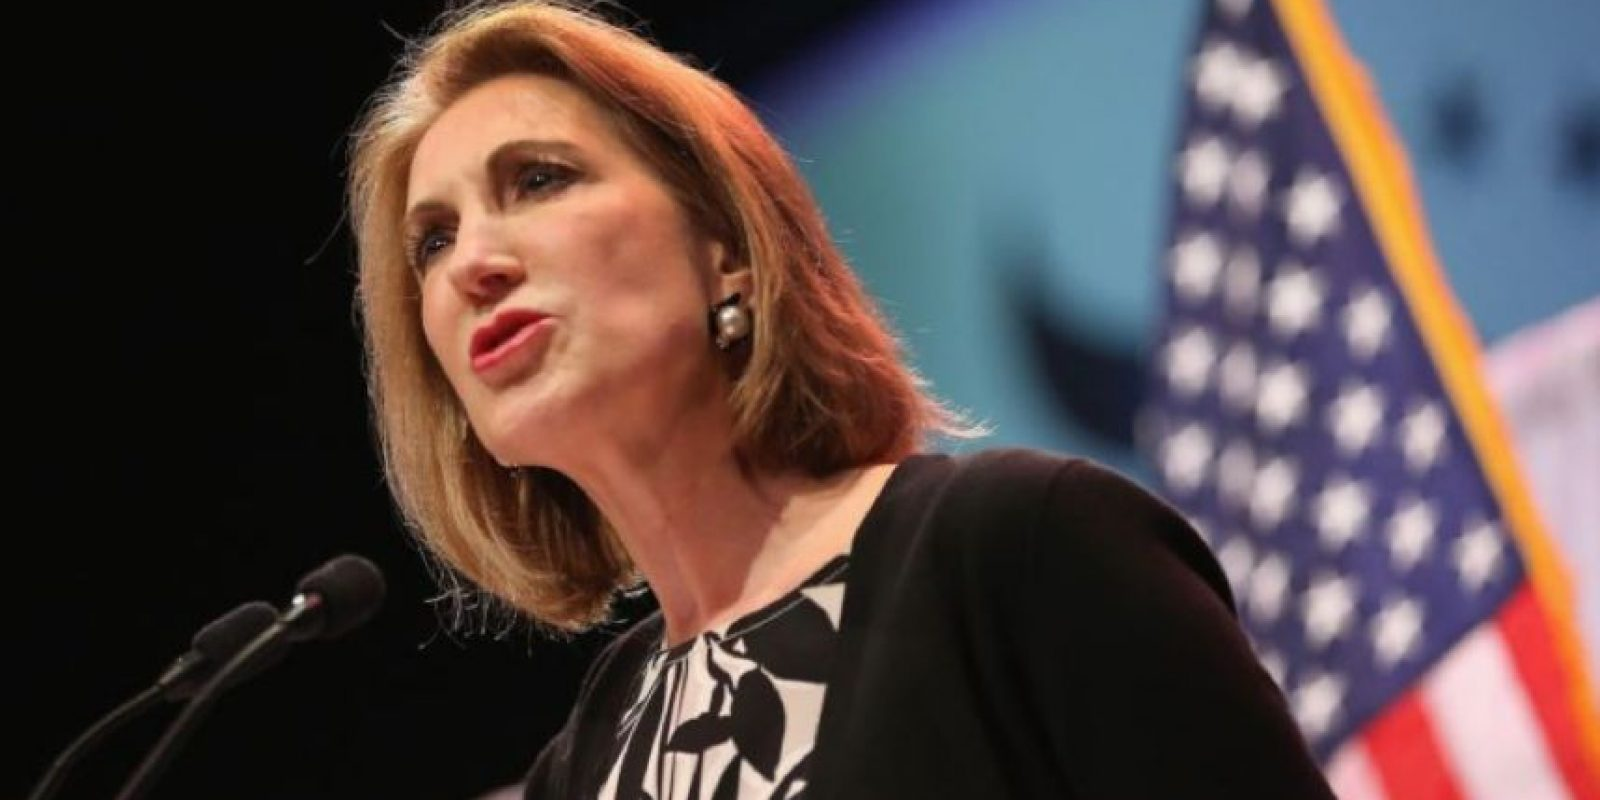 Carly Fiorina Foto:Getty Images